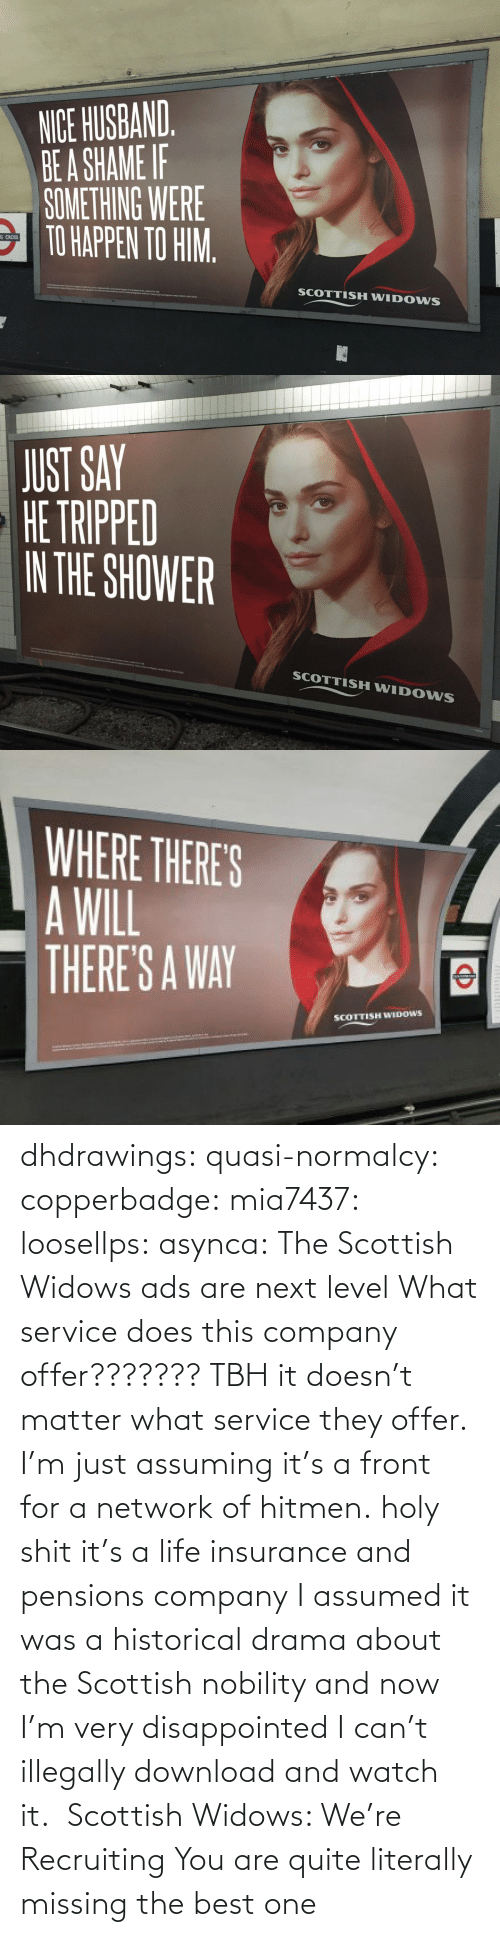 Disappointed: dhdrawings:  quasi-normalcy:  copperbadge:  mia7437:  loosellps:  asynca: The Scottish Widows ads are next level What service does this company offer??????? TBH it doesn't matter what service they offer. I'm just assuming it's a front for a network of hitmen.  holy shit it's a life insurance and pensions company  I assumed it was a historical drama about the Scottish nobility and now I'm very disappointed I can't illegally download and watch it.     Scottish Widows: We're Recruiting    You are quite literally missing the best one